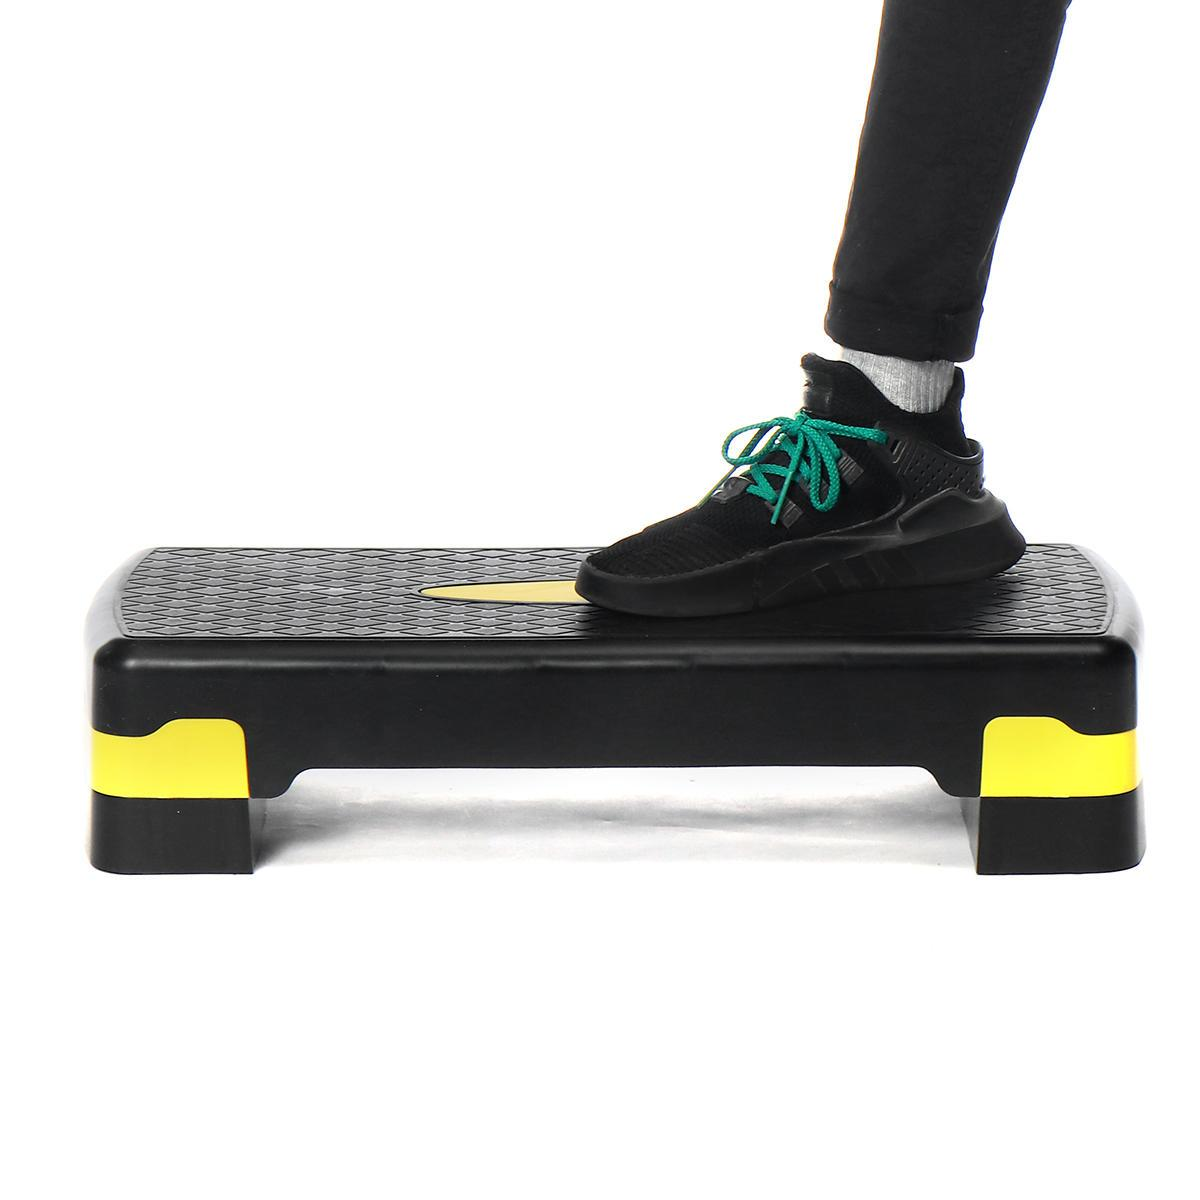 Stepsy Adjustable Exercise Gym Stepper Best for Cardio Aerobic and Fitness Workouts